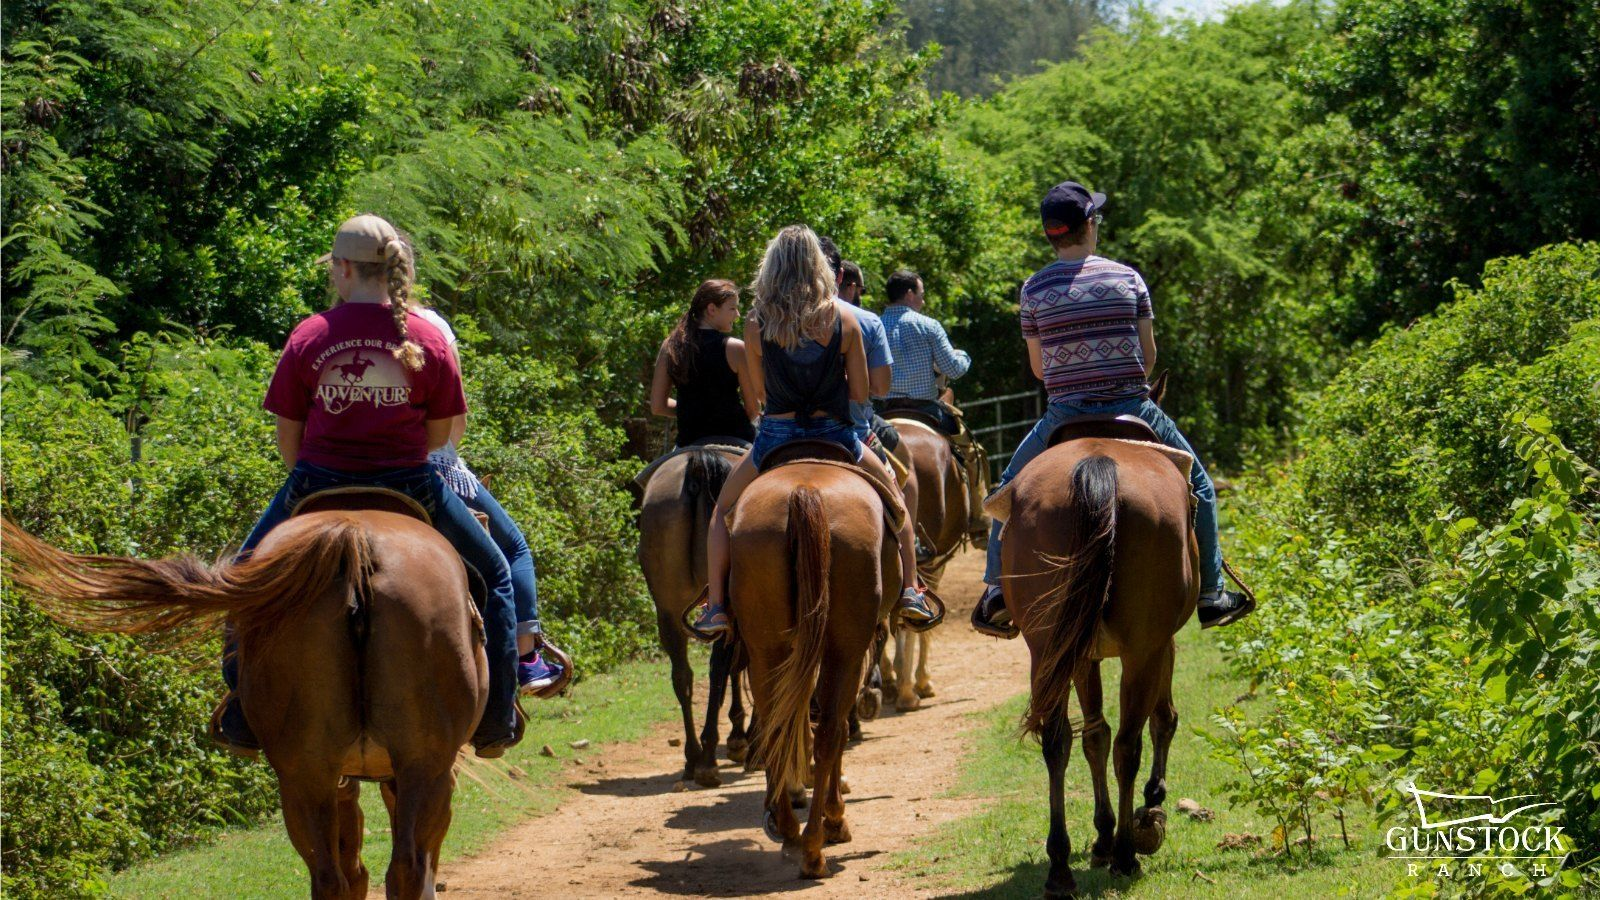 Group of people on horseback on a trail at Gunstock Ranch